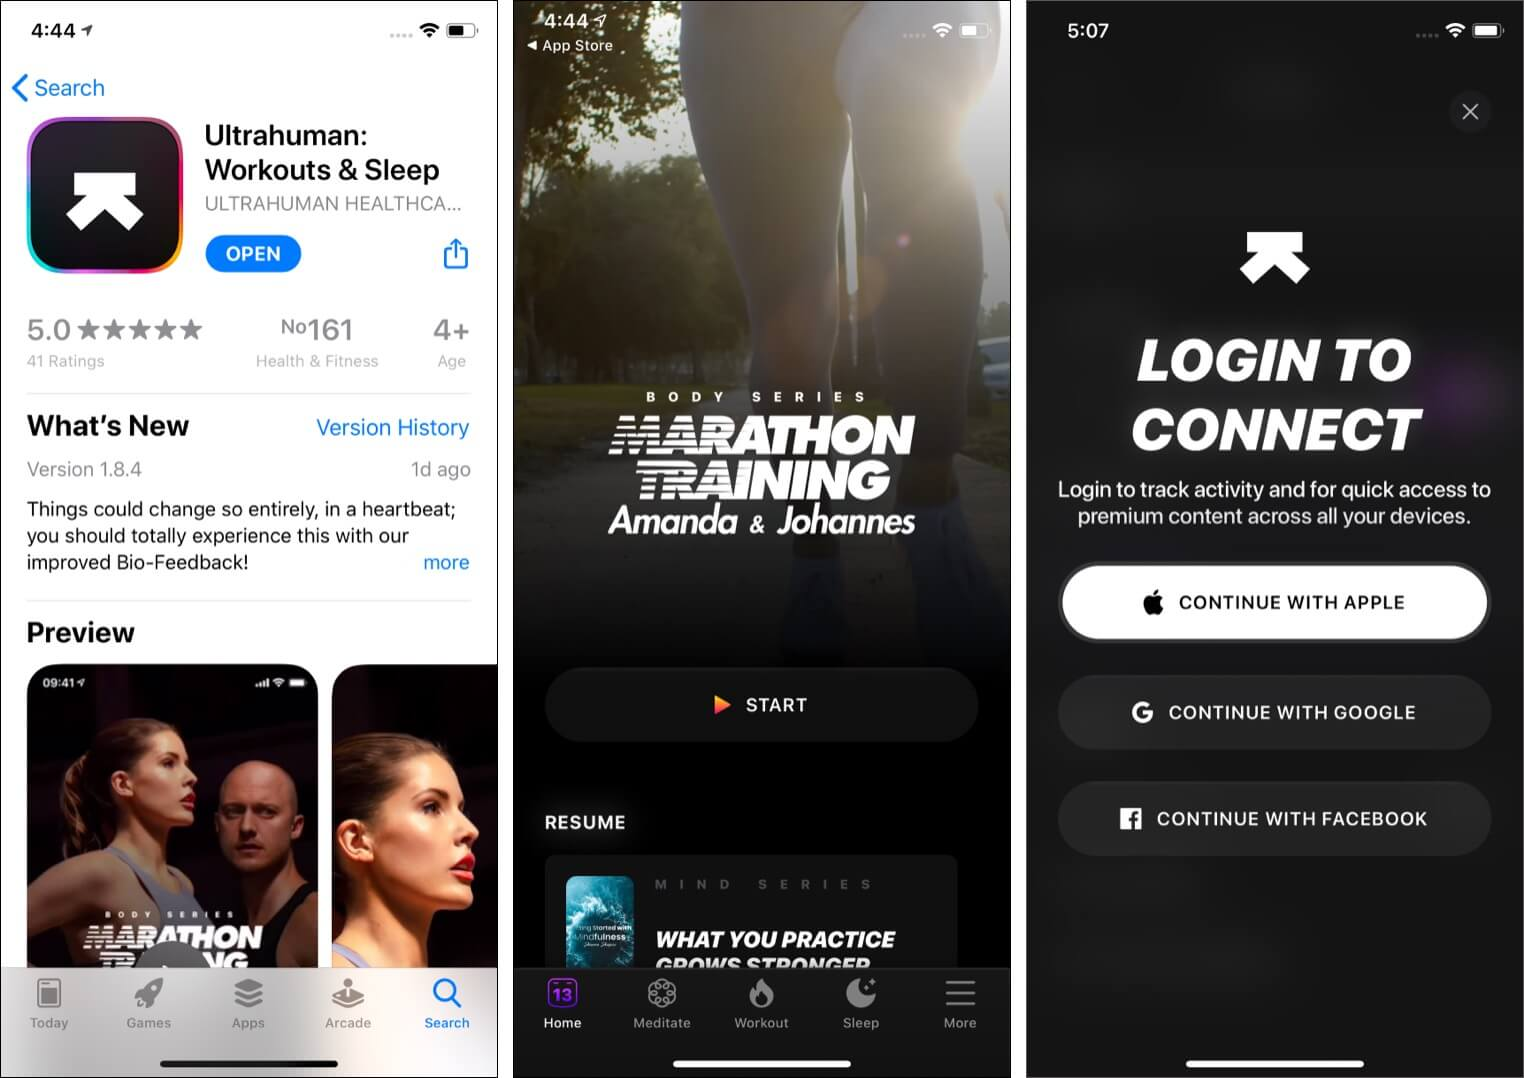 Download Ultrahuman and login for best results